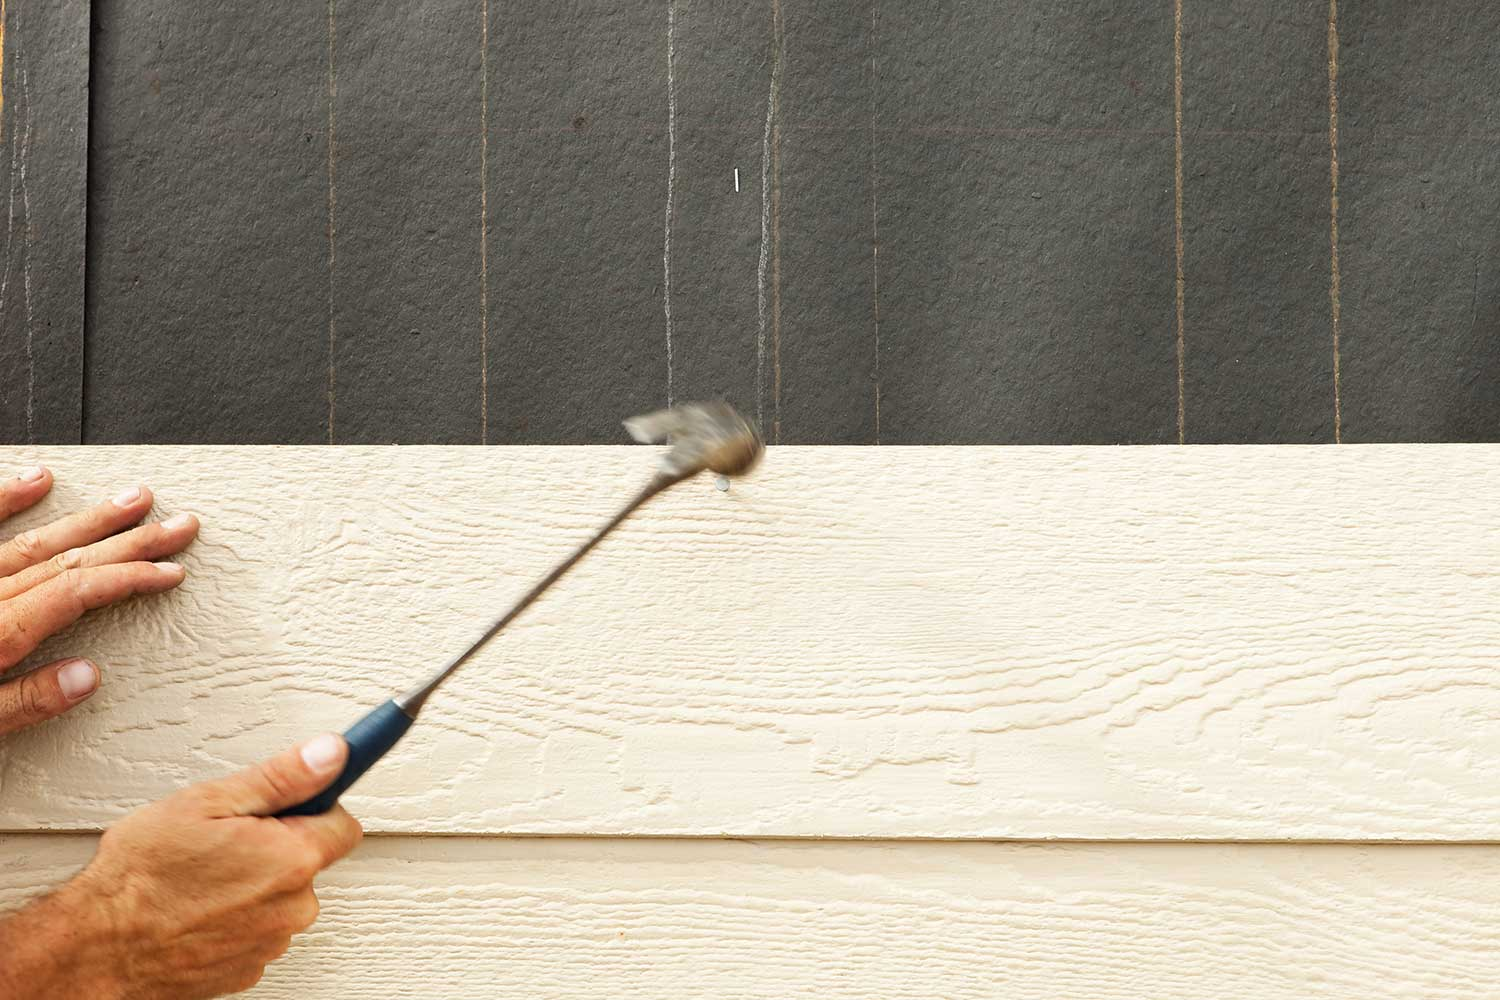 A construction worker using a hammer installing siding onto a tar paper covered exterior house wall